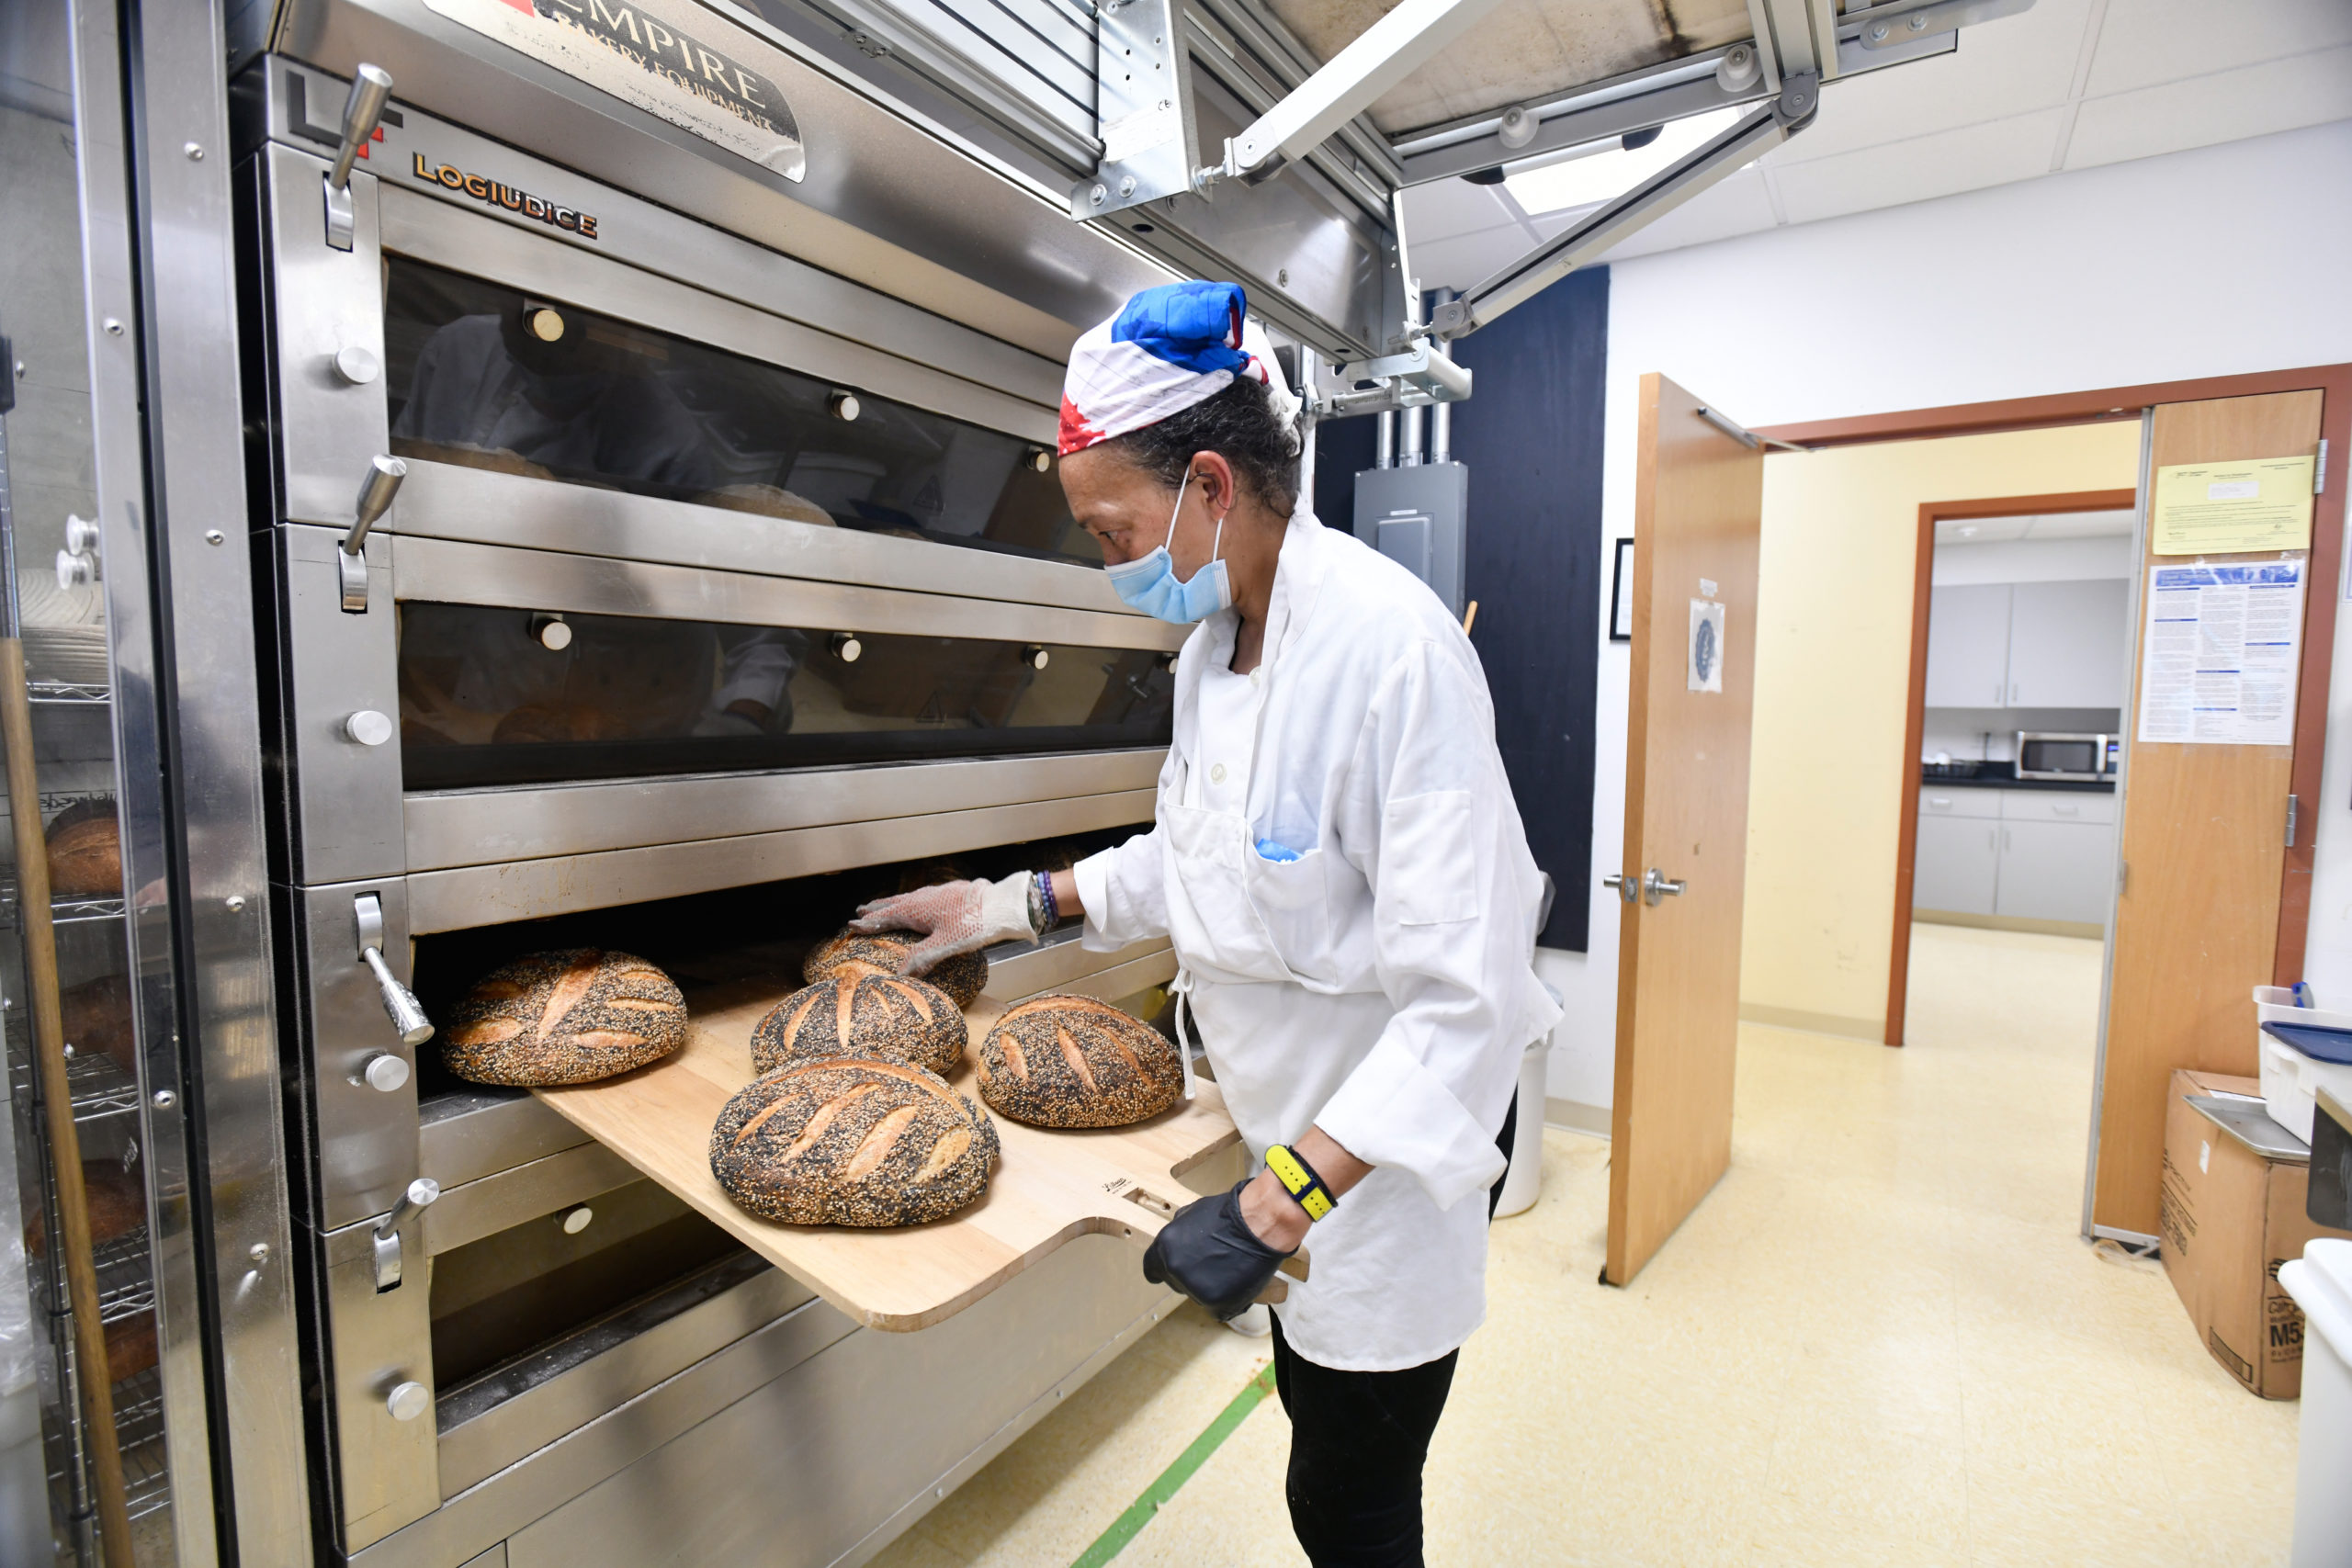 Baker Isabelle Saint-Marie pulls freshly baked loaves out of the oven.  DANA SHAW